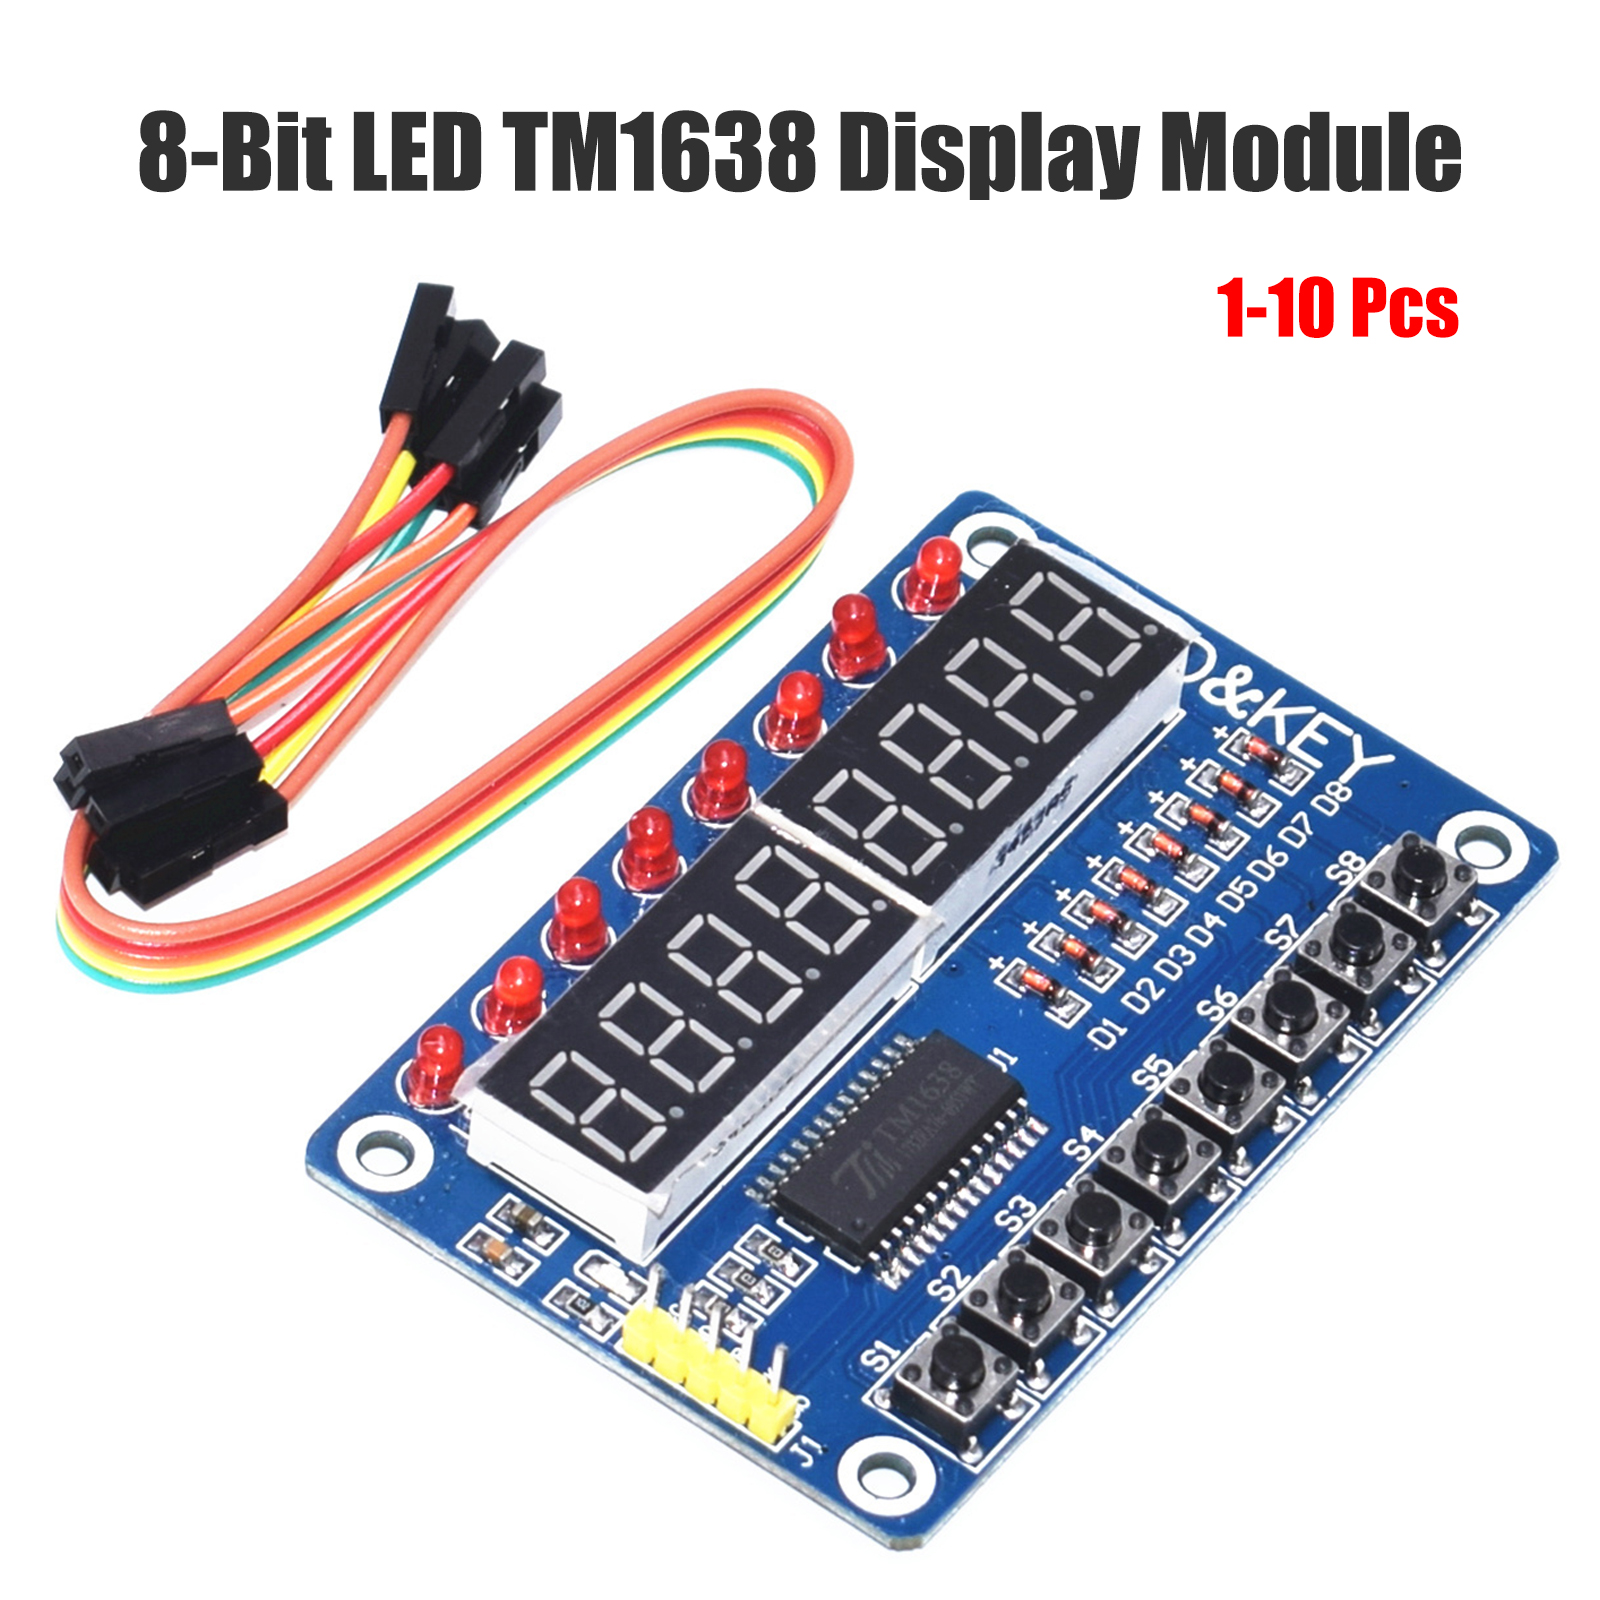 Details about New Key Display For AVR Arduino New 8-Bit Digital LED Tube  8-Bit TM1638 Module